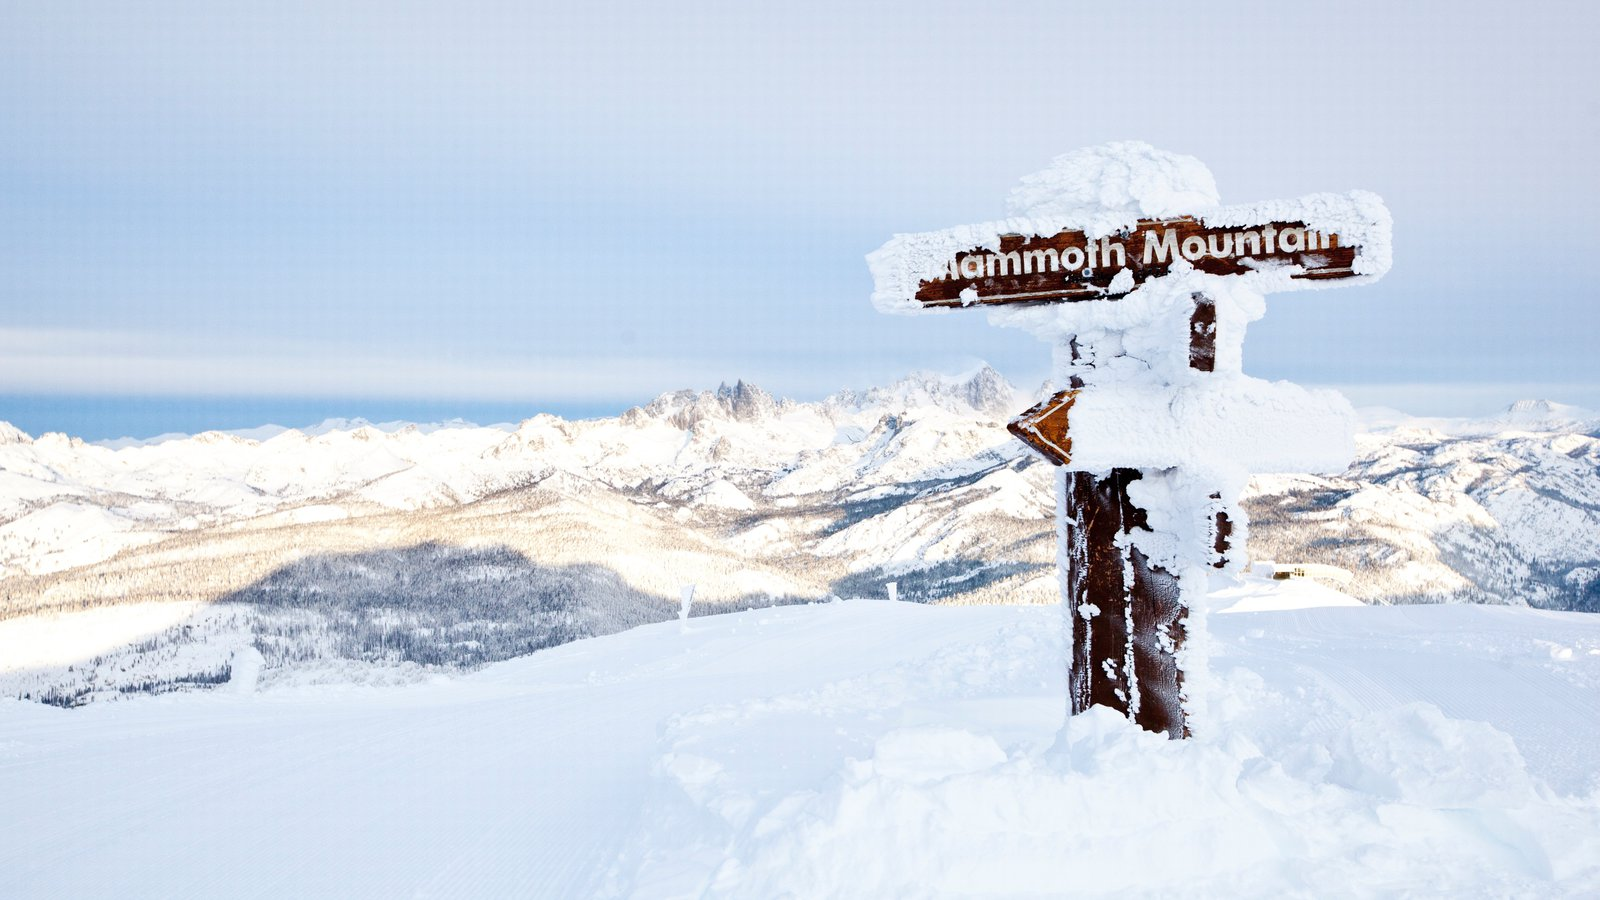 landscape pictures: view images of mammoth mountain ski resort